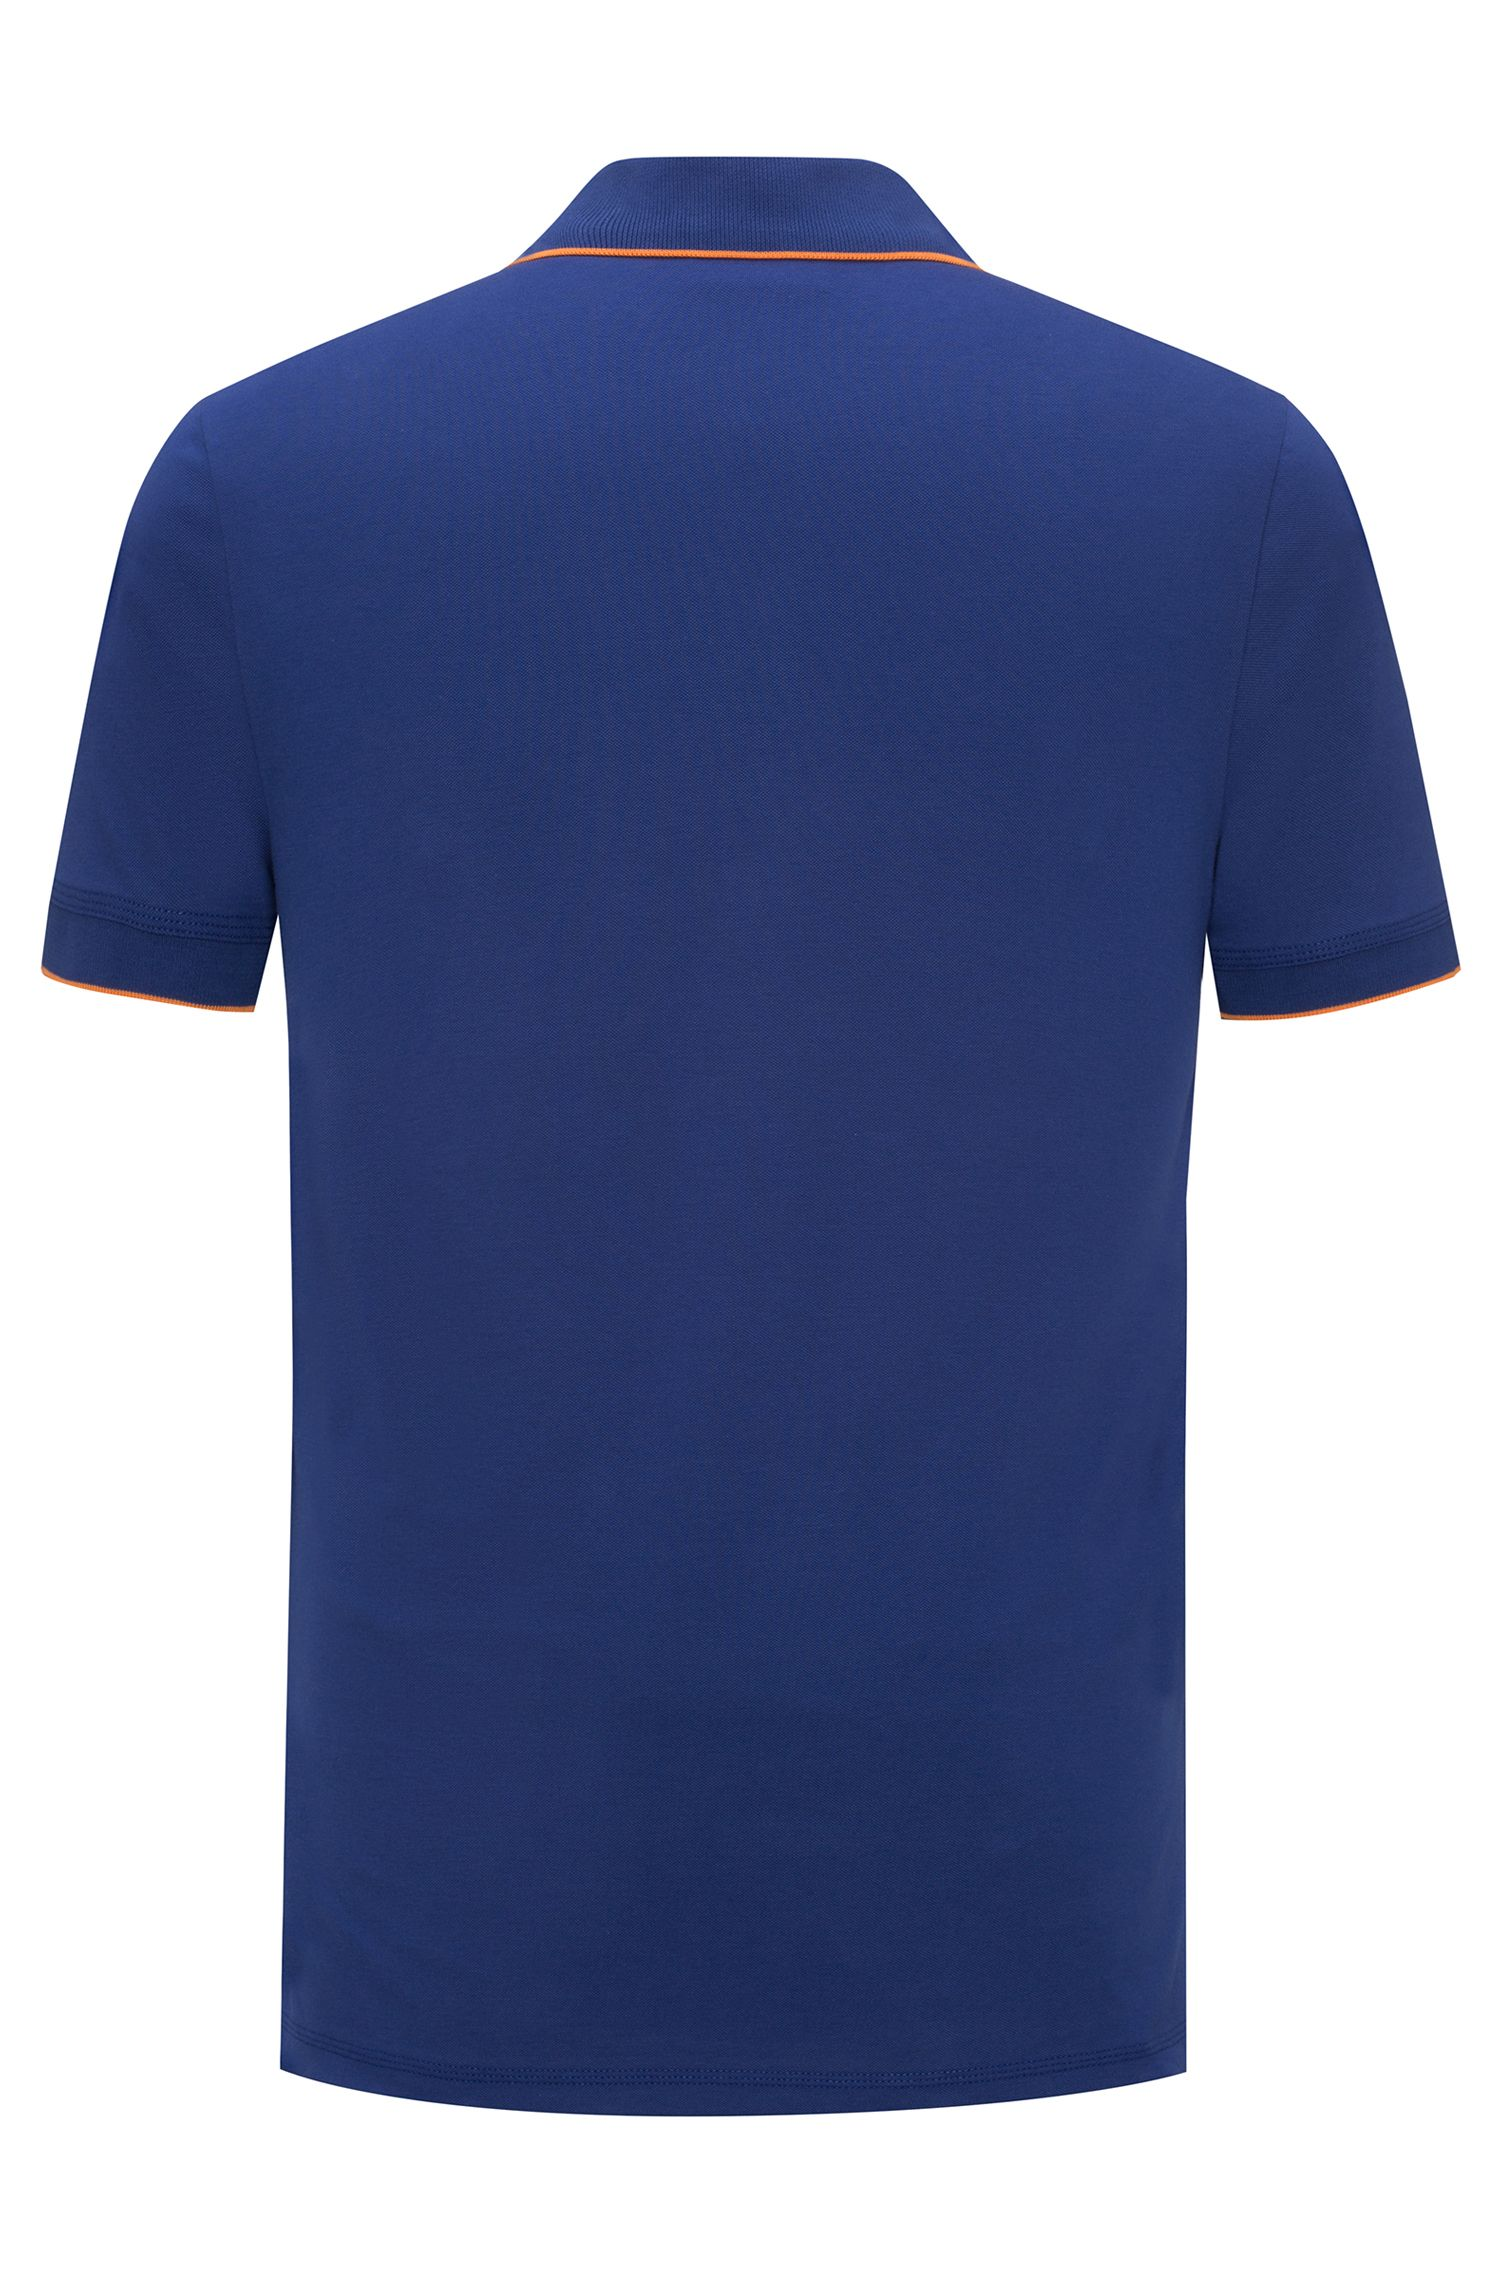 Slim-fit pique polo shirt with contrast tipping, Bleu foncé